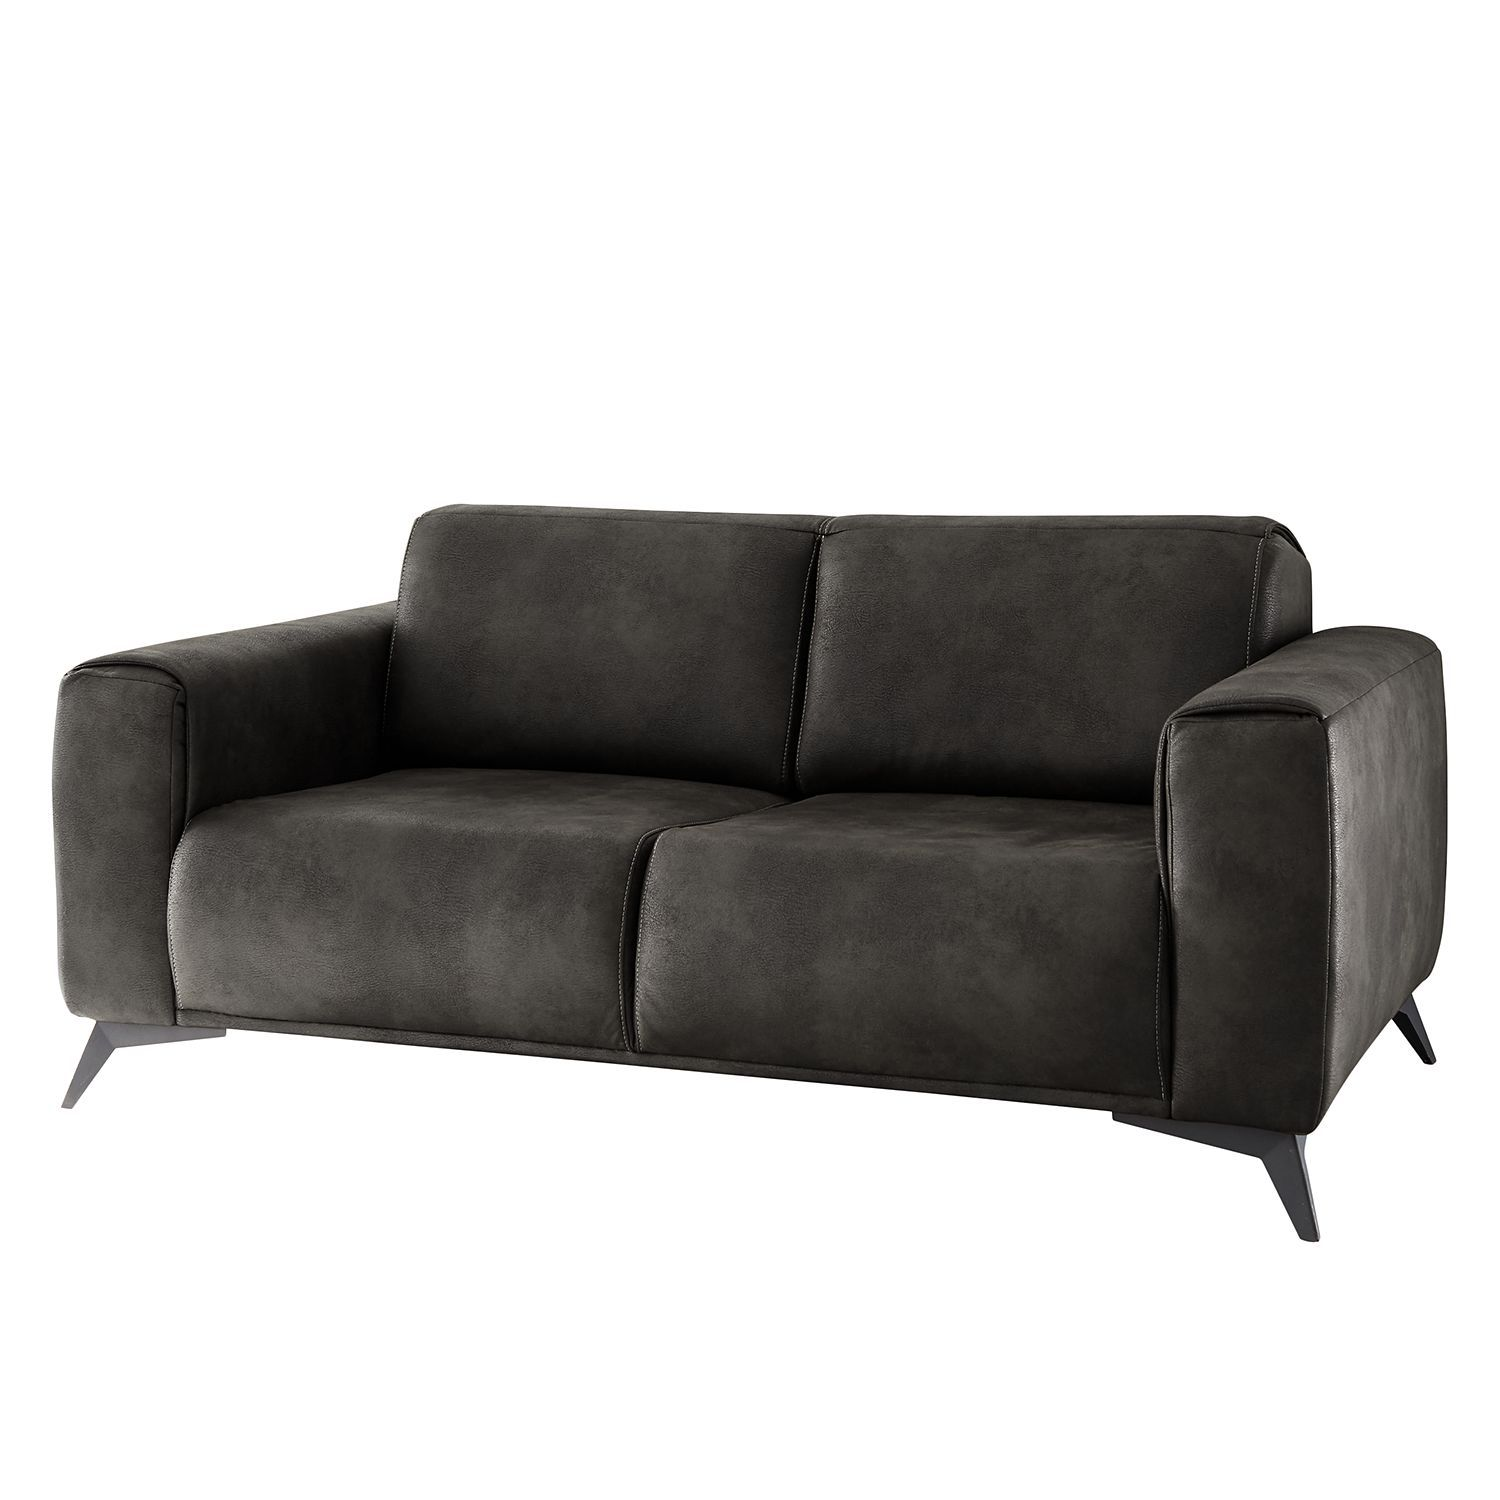 Ecksofa Kolonialstil Bettfunktion Sofa Churchill 2 5 Sitzer In 2019 Sofas Sofa Sofa Furniture